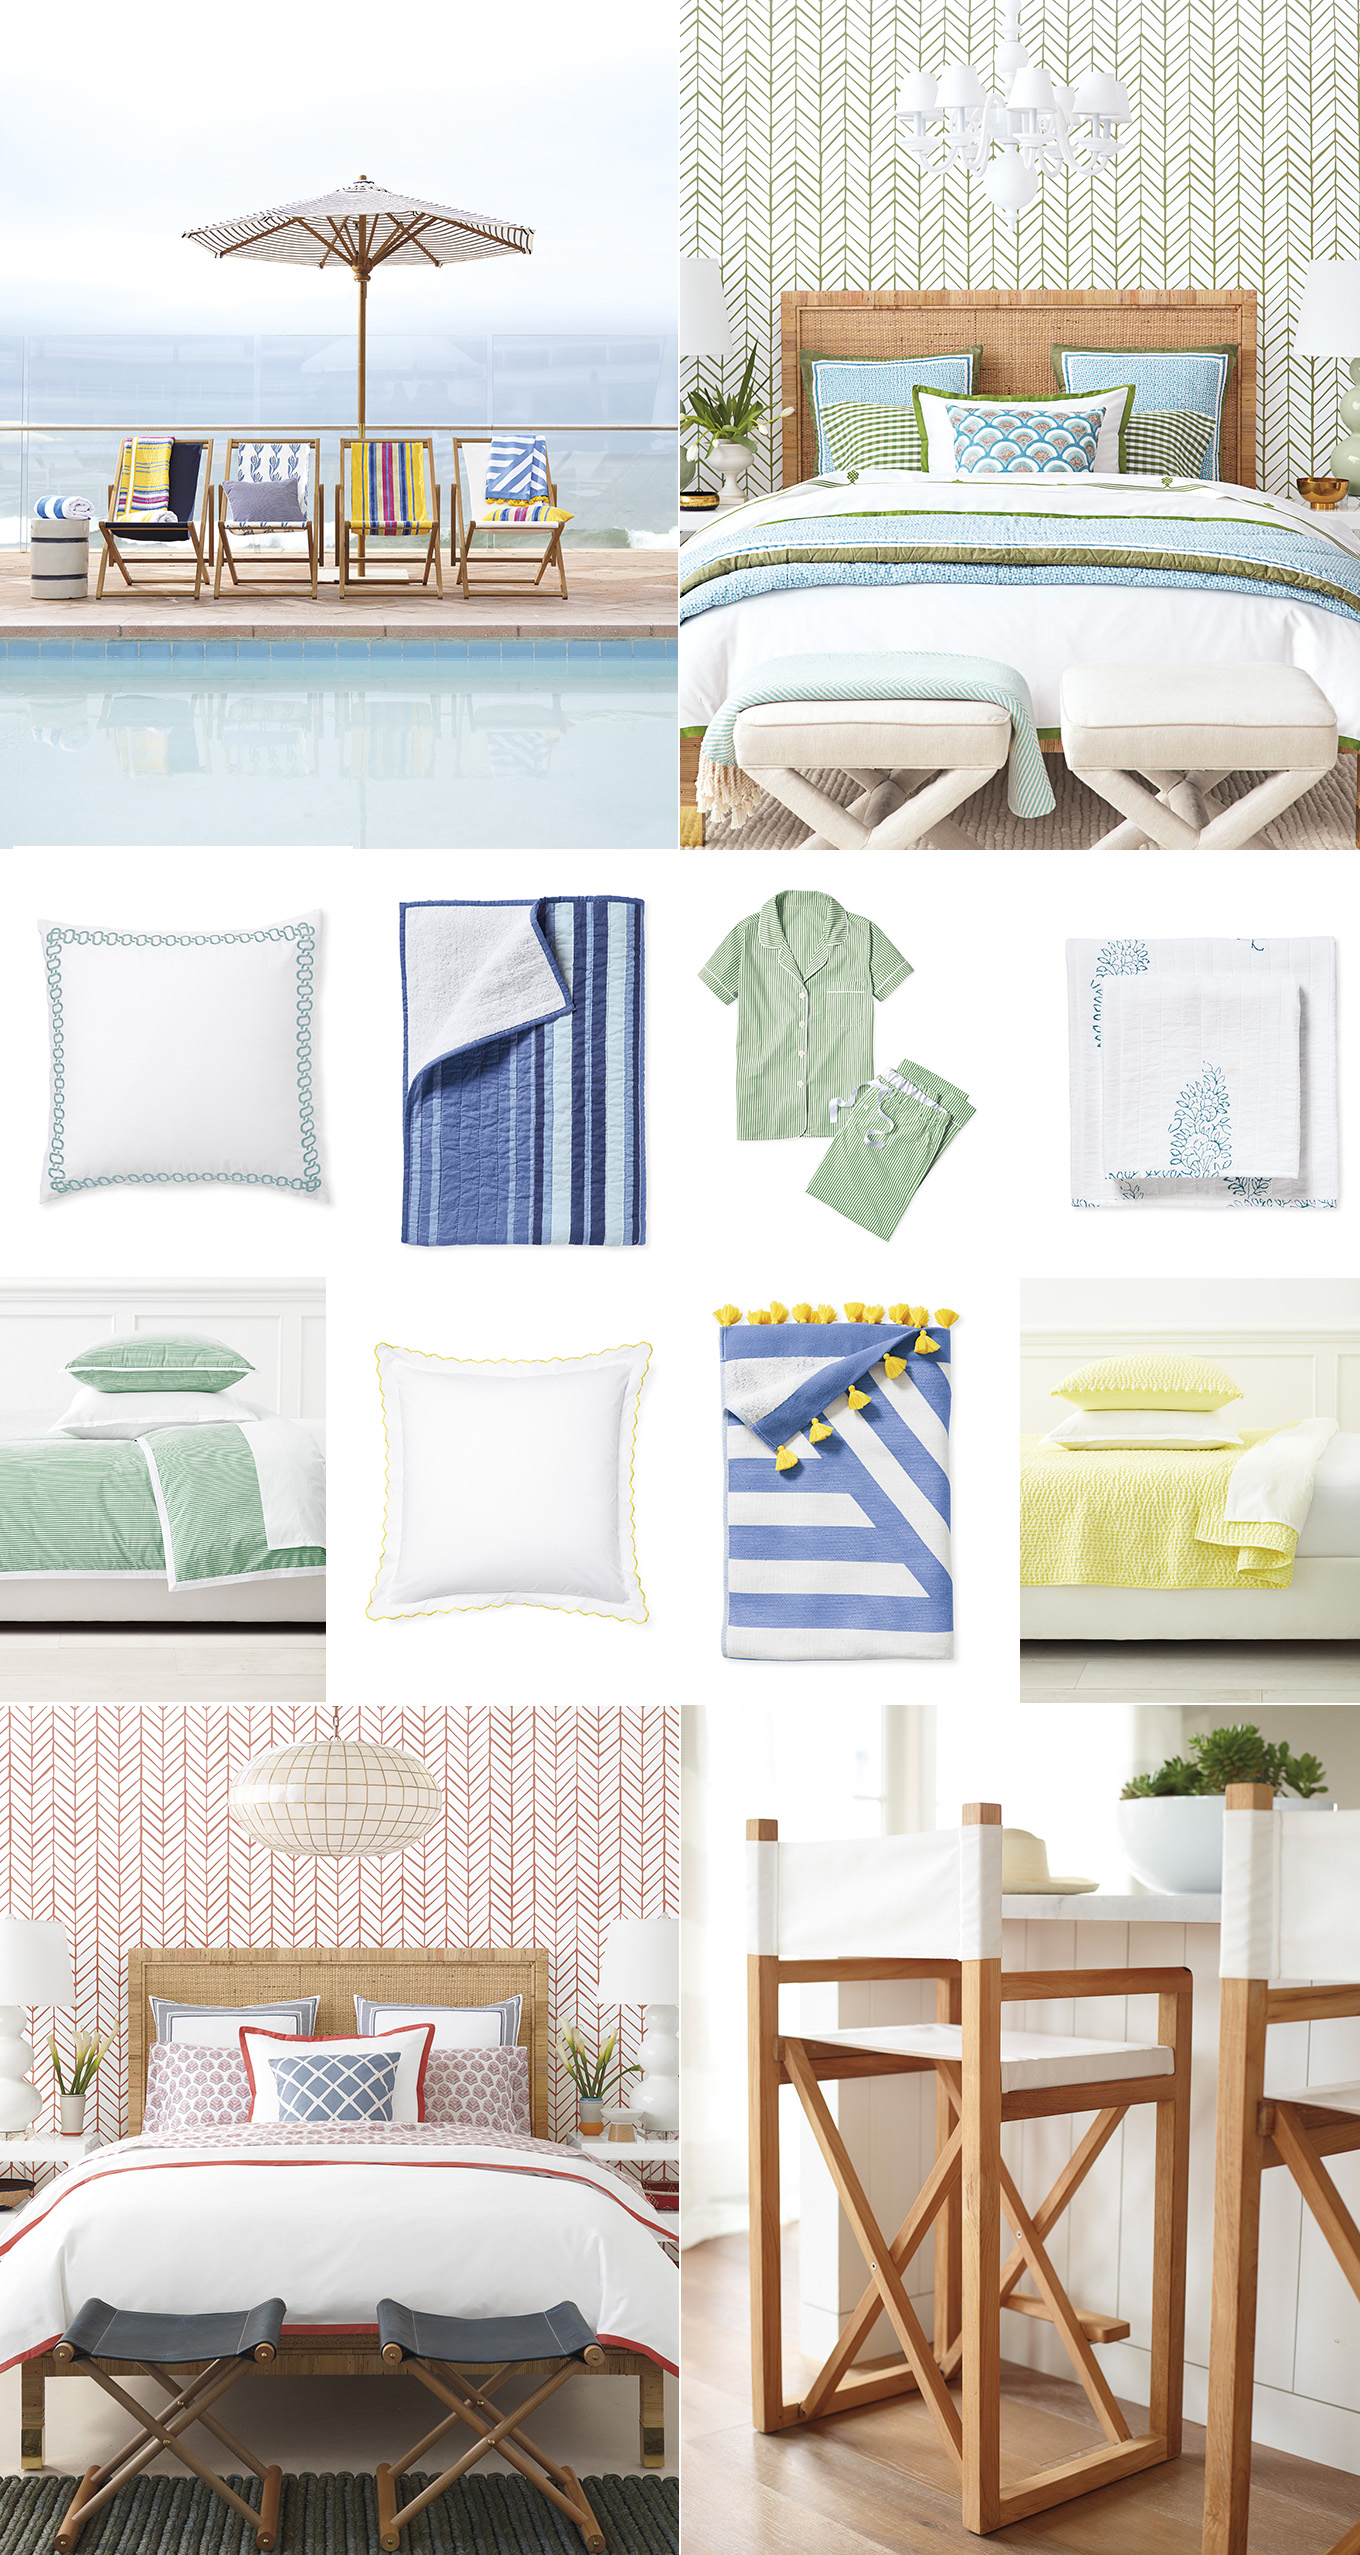 Ridgely Brode rounds up her favorite bedding and bath items from the Serena & Lily Tent Sale on her blog, Ridgely's Radar.